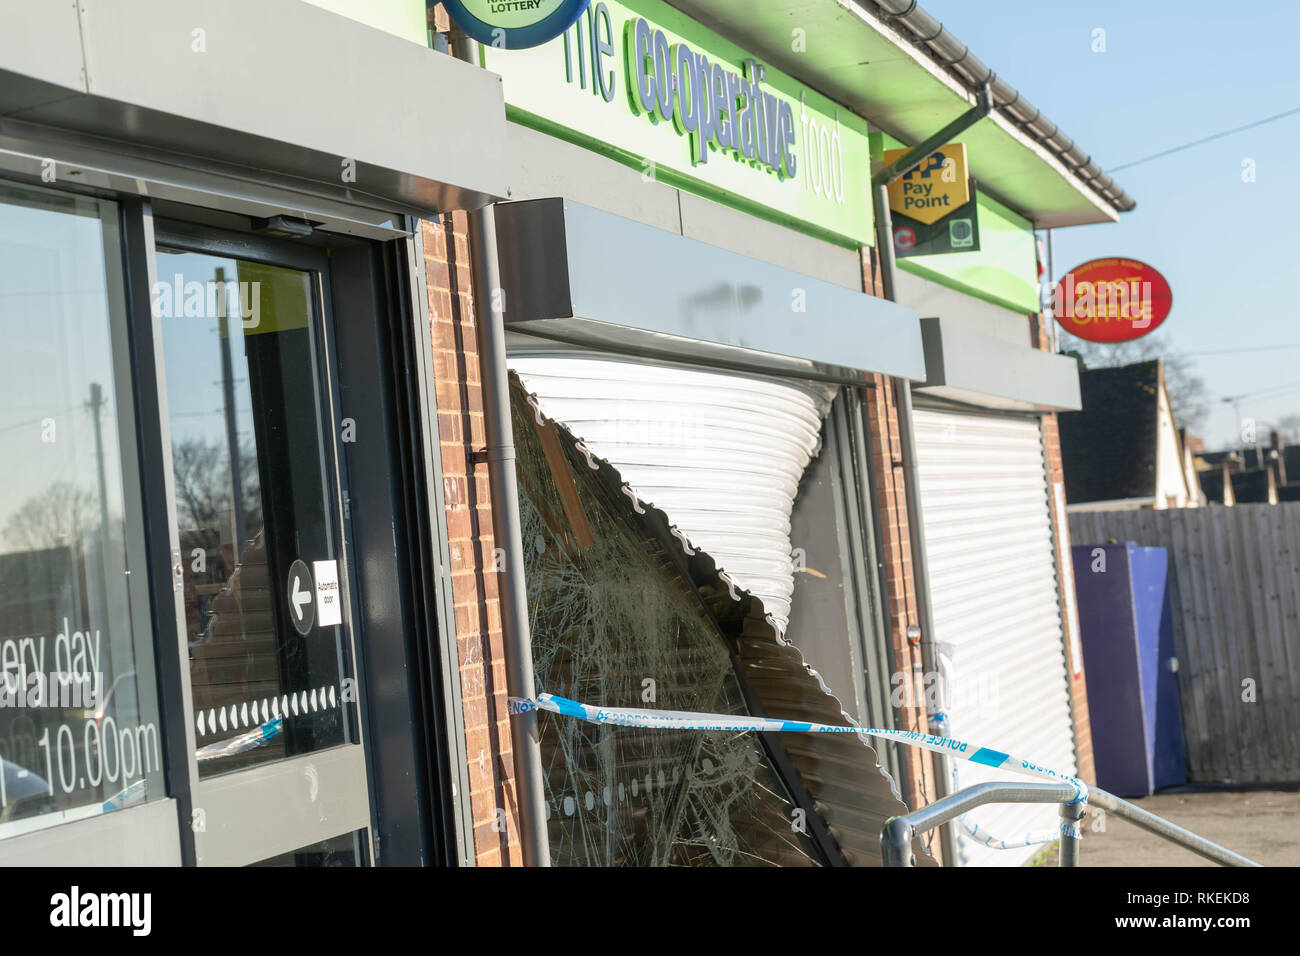 Brentwood, Essex 11th February 2019 Thieves broke in to the